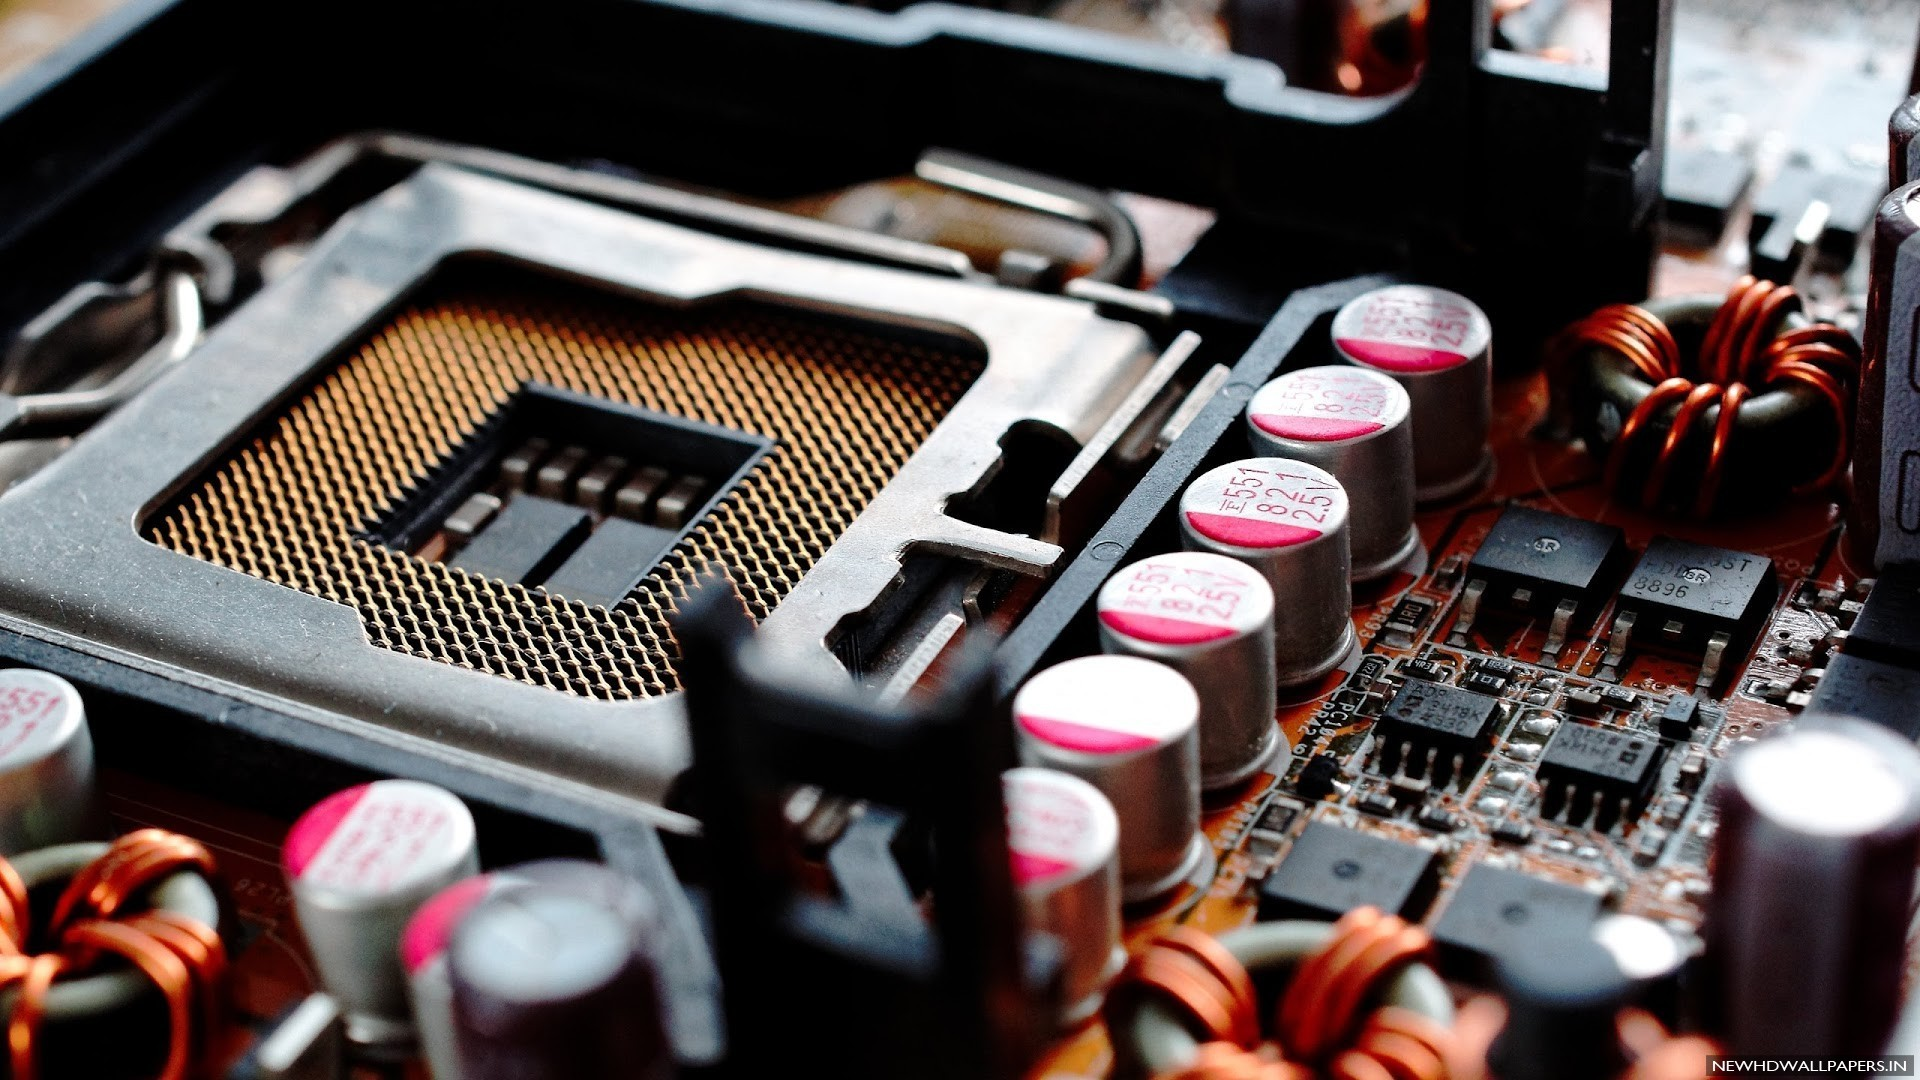 Motherboard HD Wallpaper 67 images 1920x1080